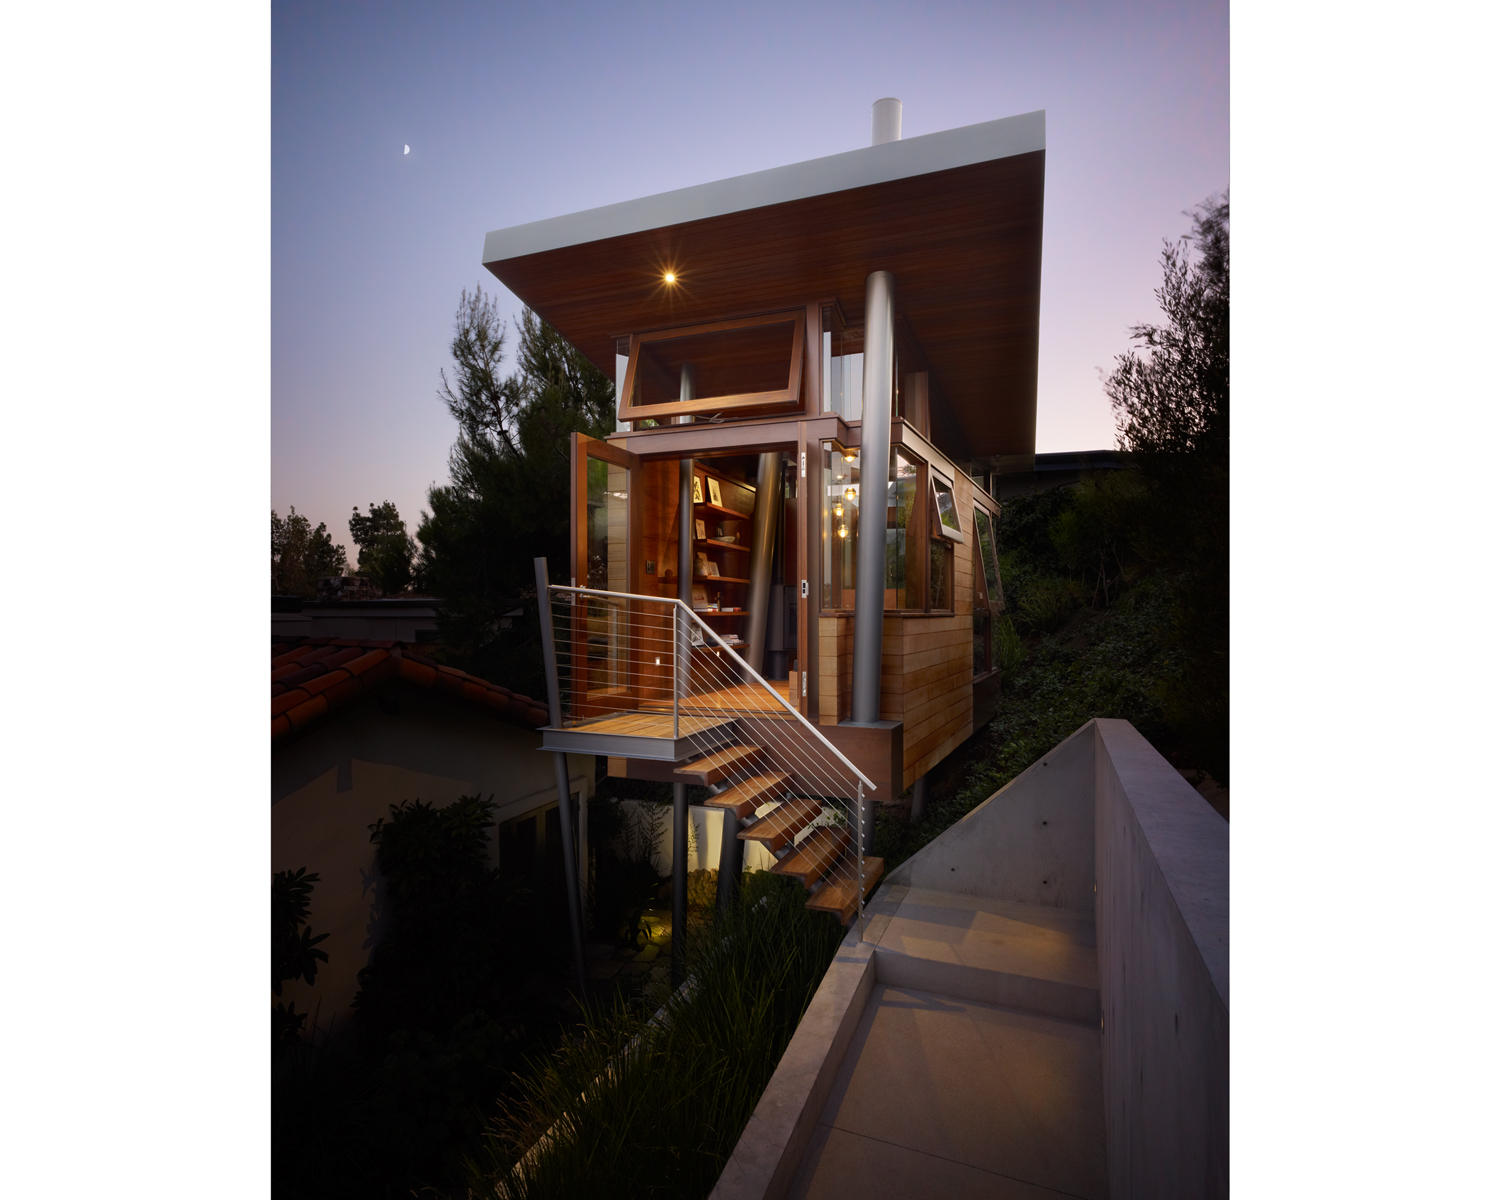 Banyan drive treehouse residential architect for Residential architect design awards